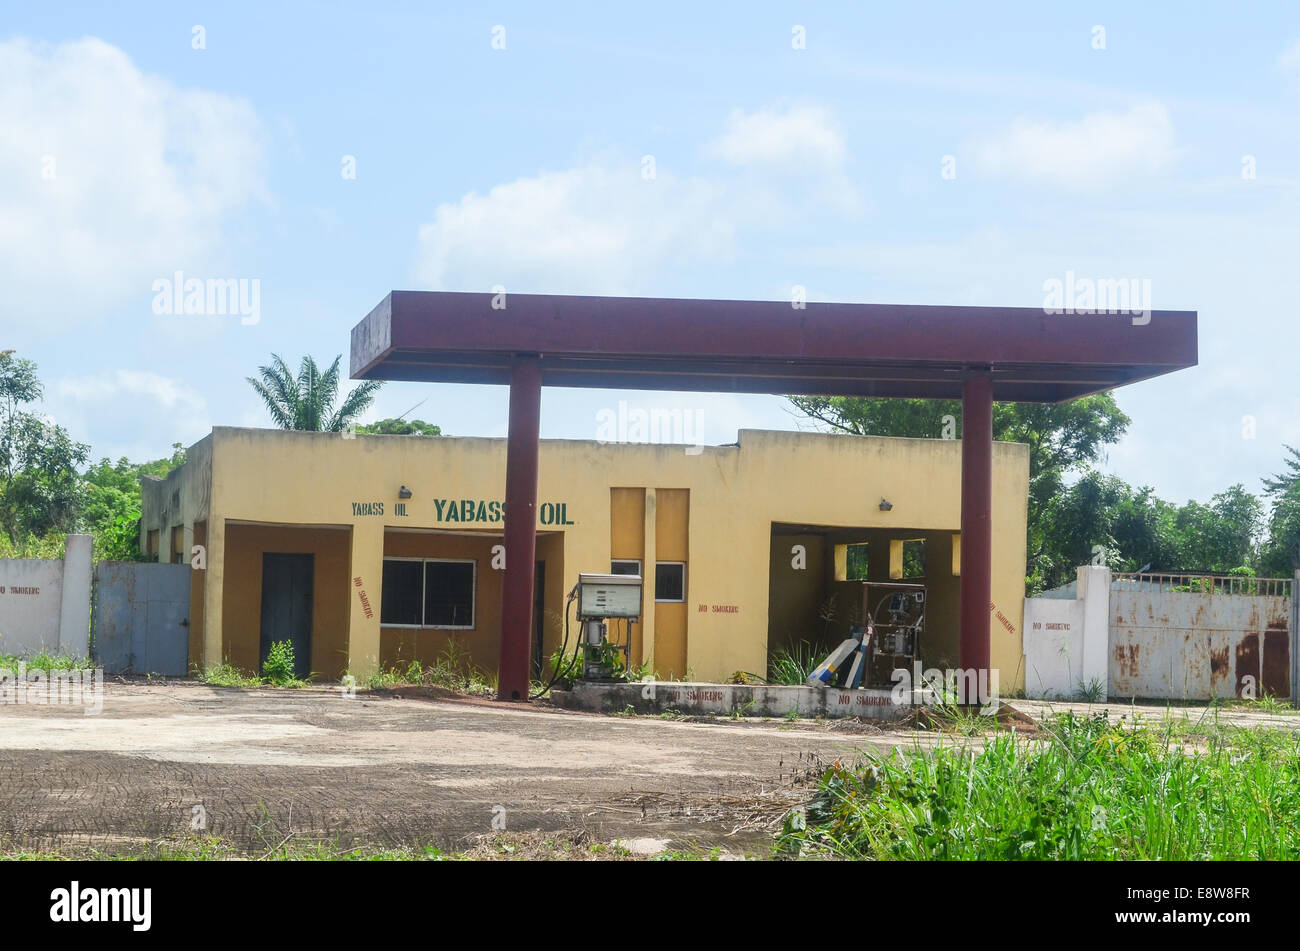 An abandoned gas station in south-west Nigeria, Ogun state - Stock Image